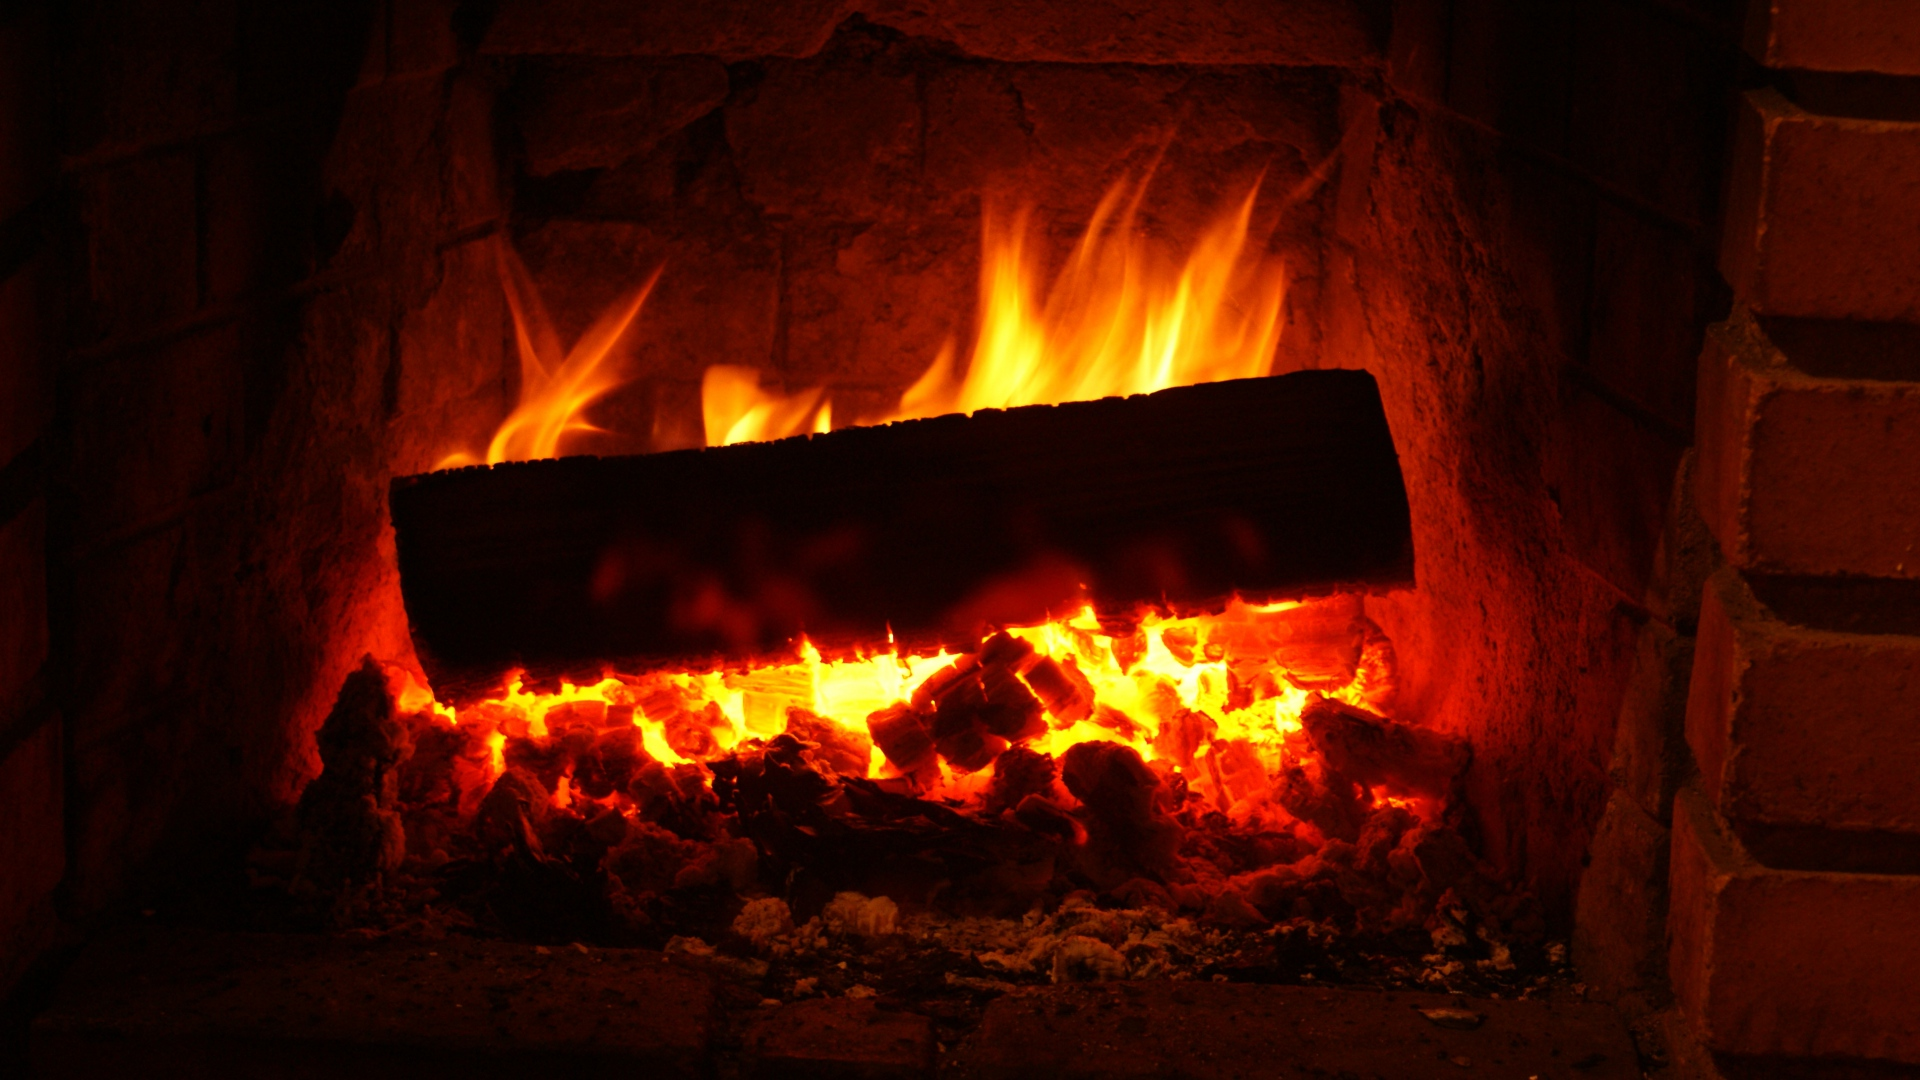 9 Lovely HD Fireplace Wallpapers - HDWallSource.com